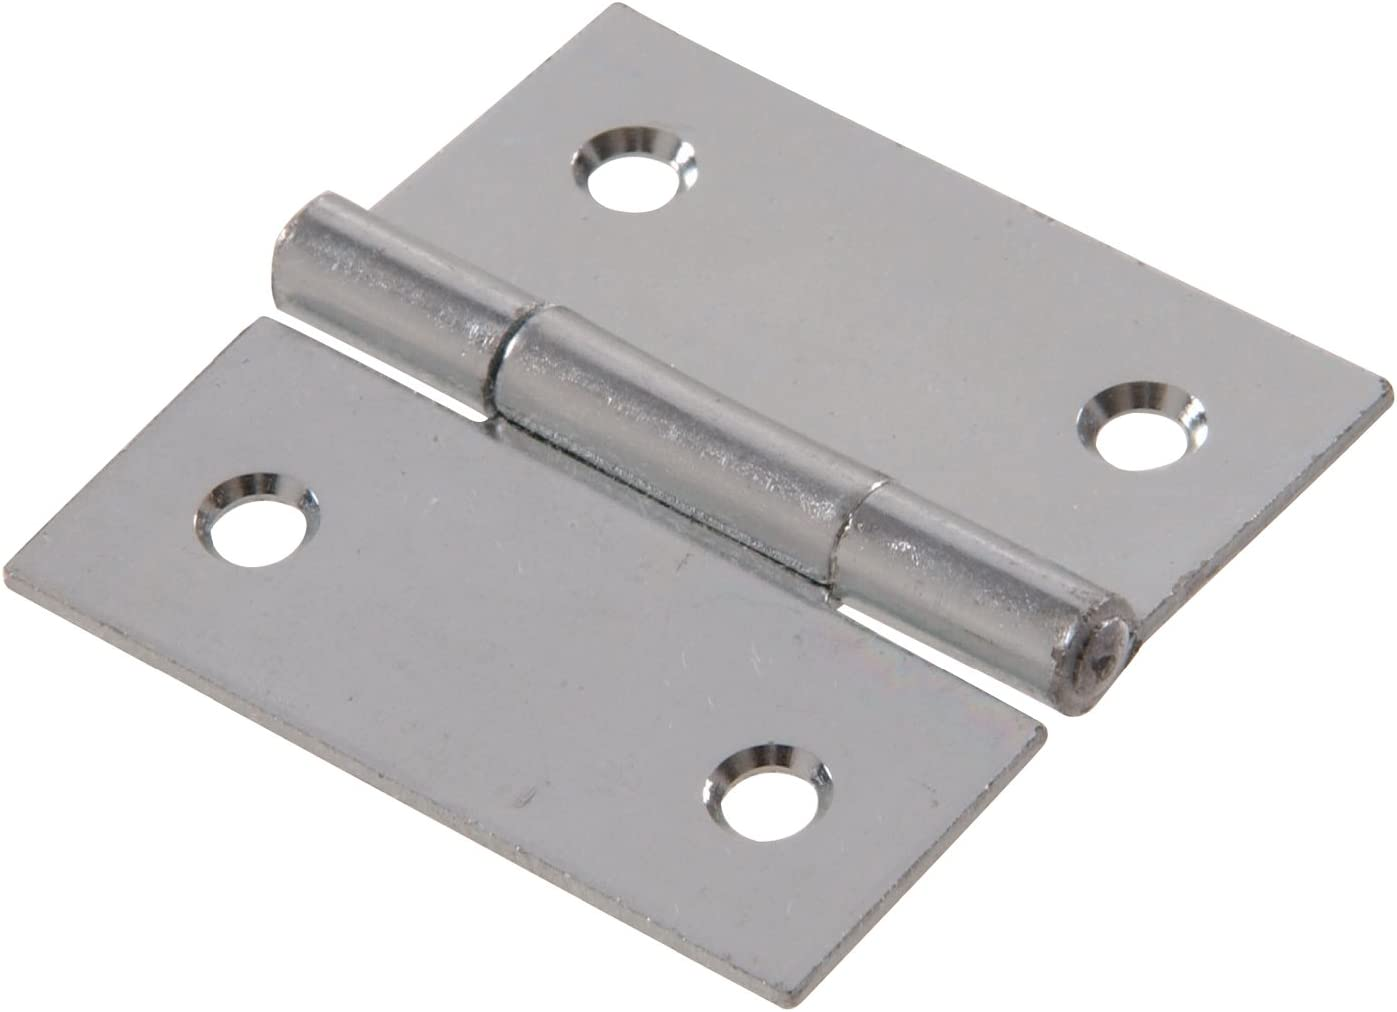 Hillman Hardware Essentials 852816 General Purpose Square Corner Hinges Removable Pin Zinc-plated 2-2 Pack